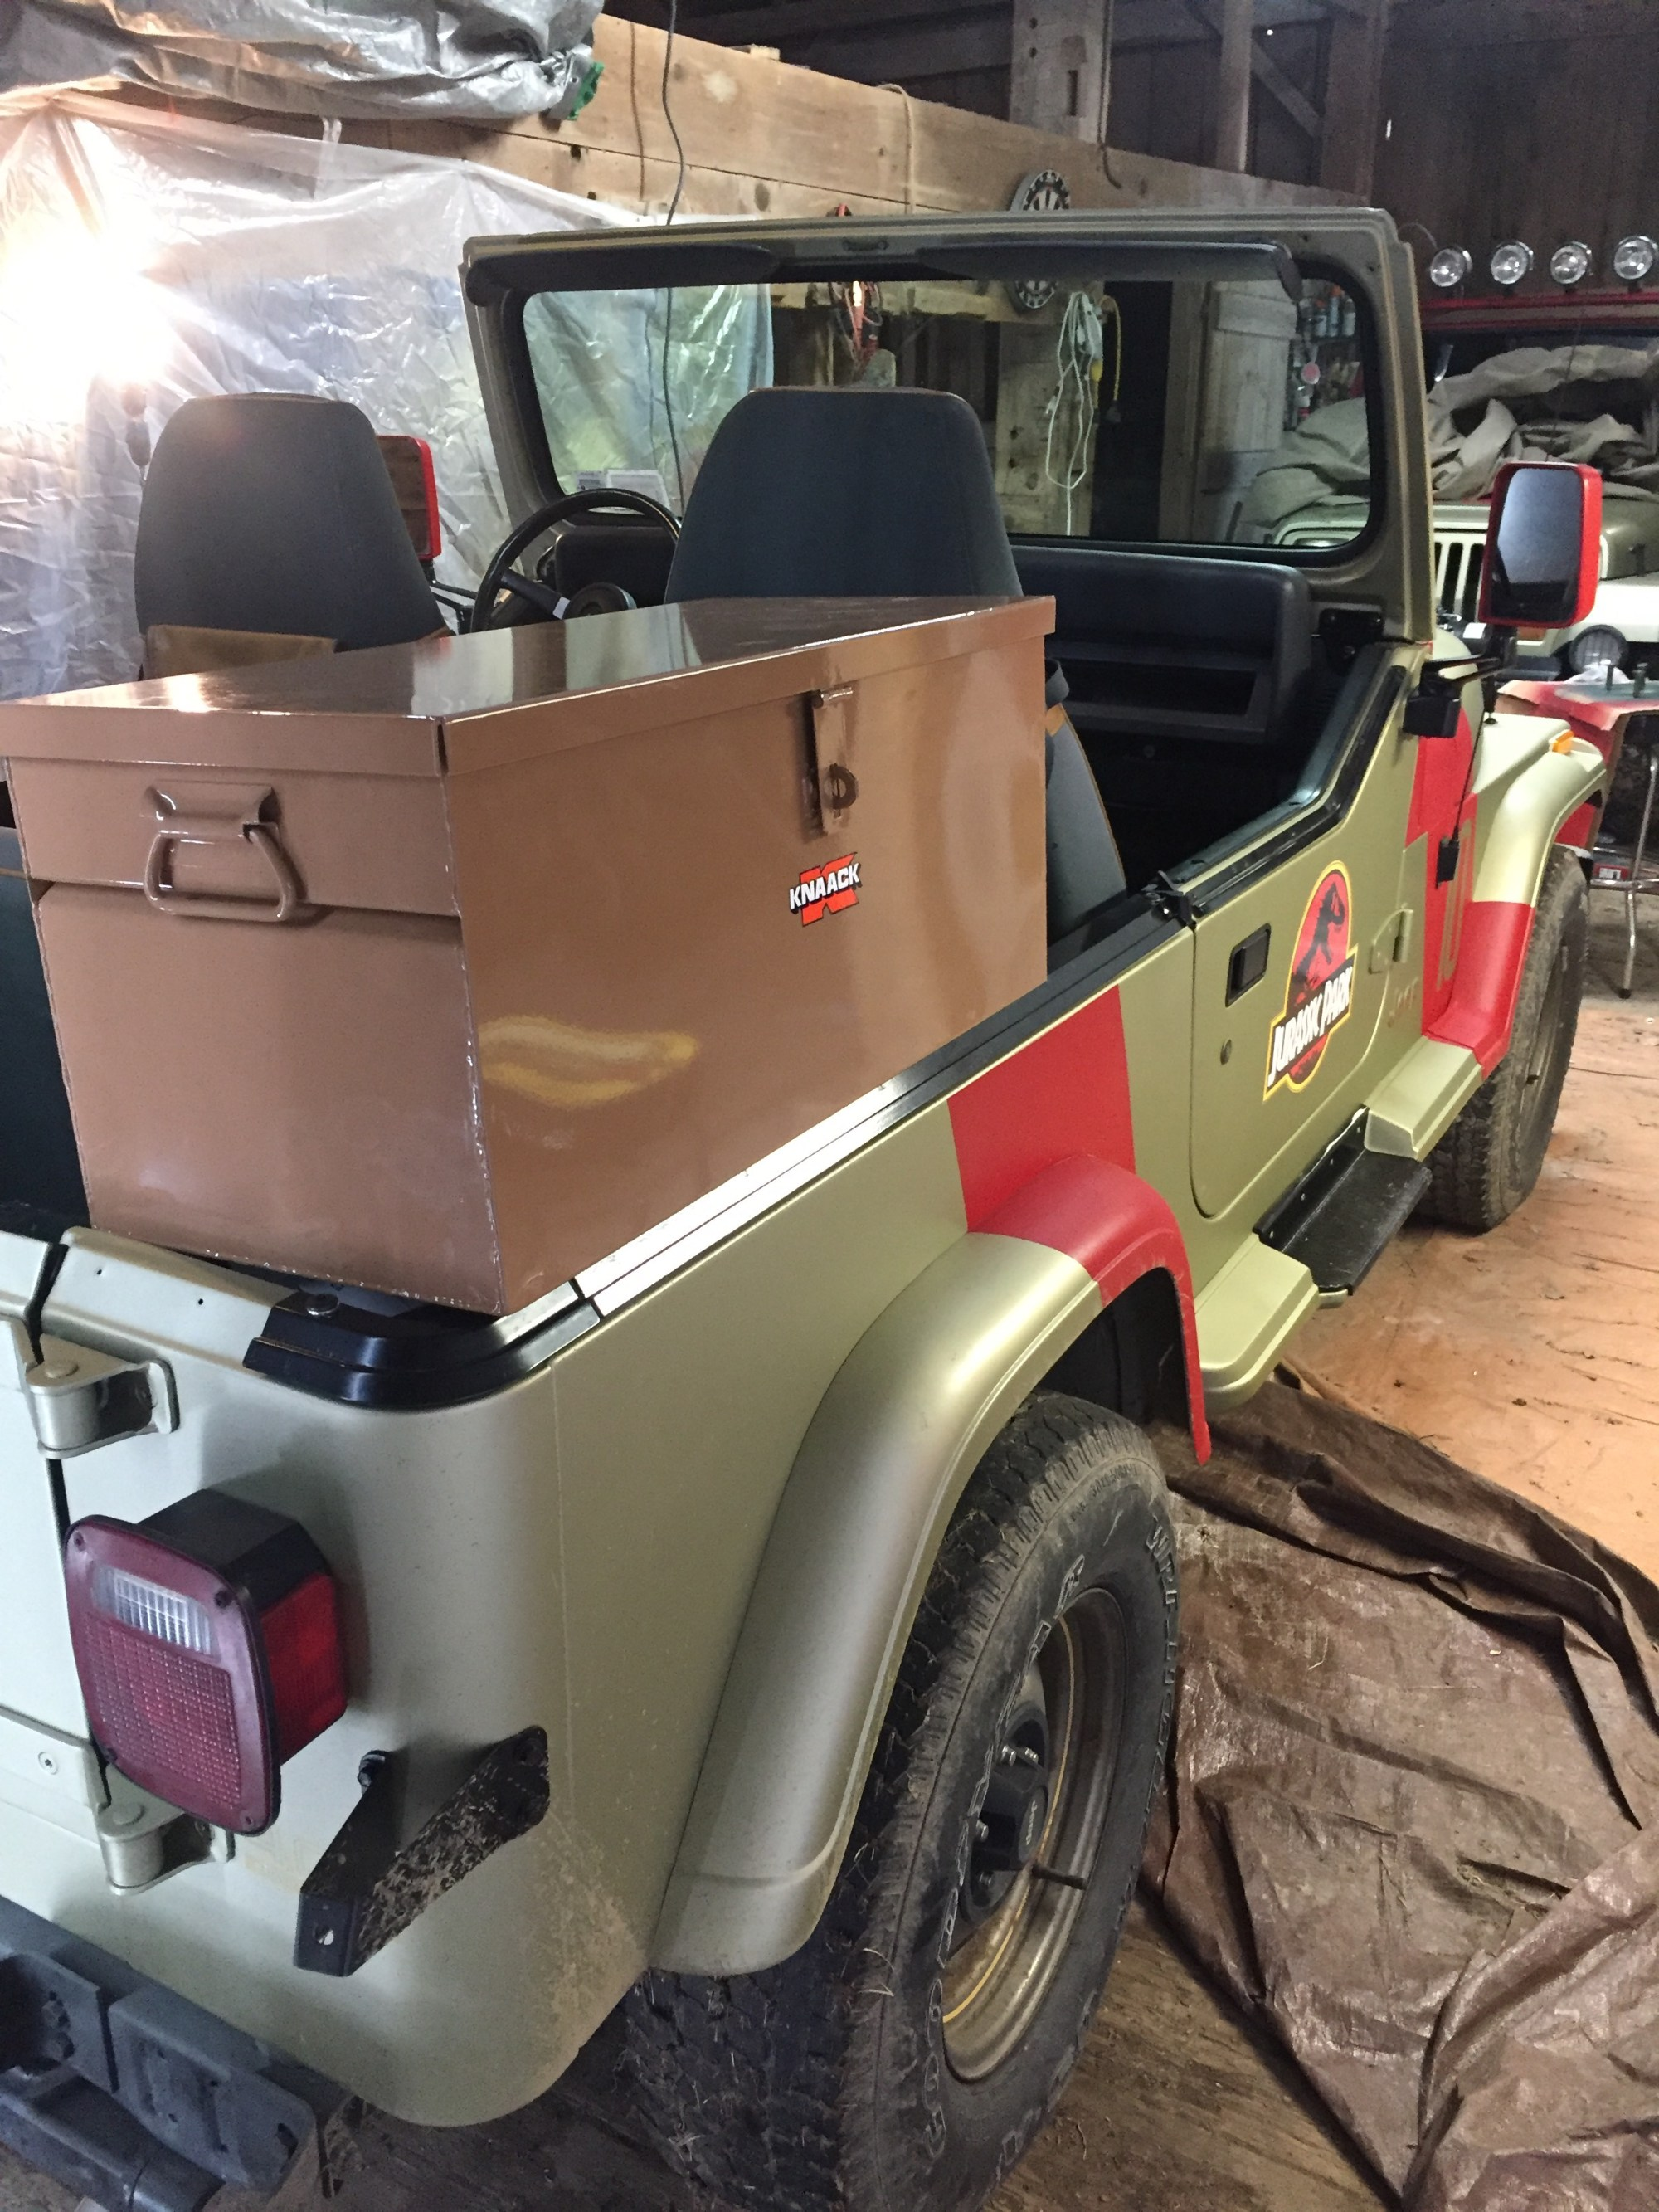 hight resolution of disclaimer the modifications required to produce a screen accurate jp10 jeep may conflict with local laws after removing the roll bar the vehicle may no